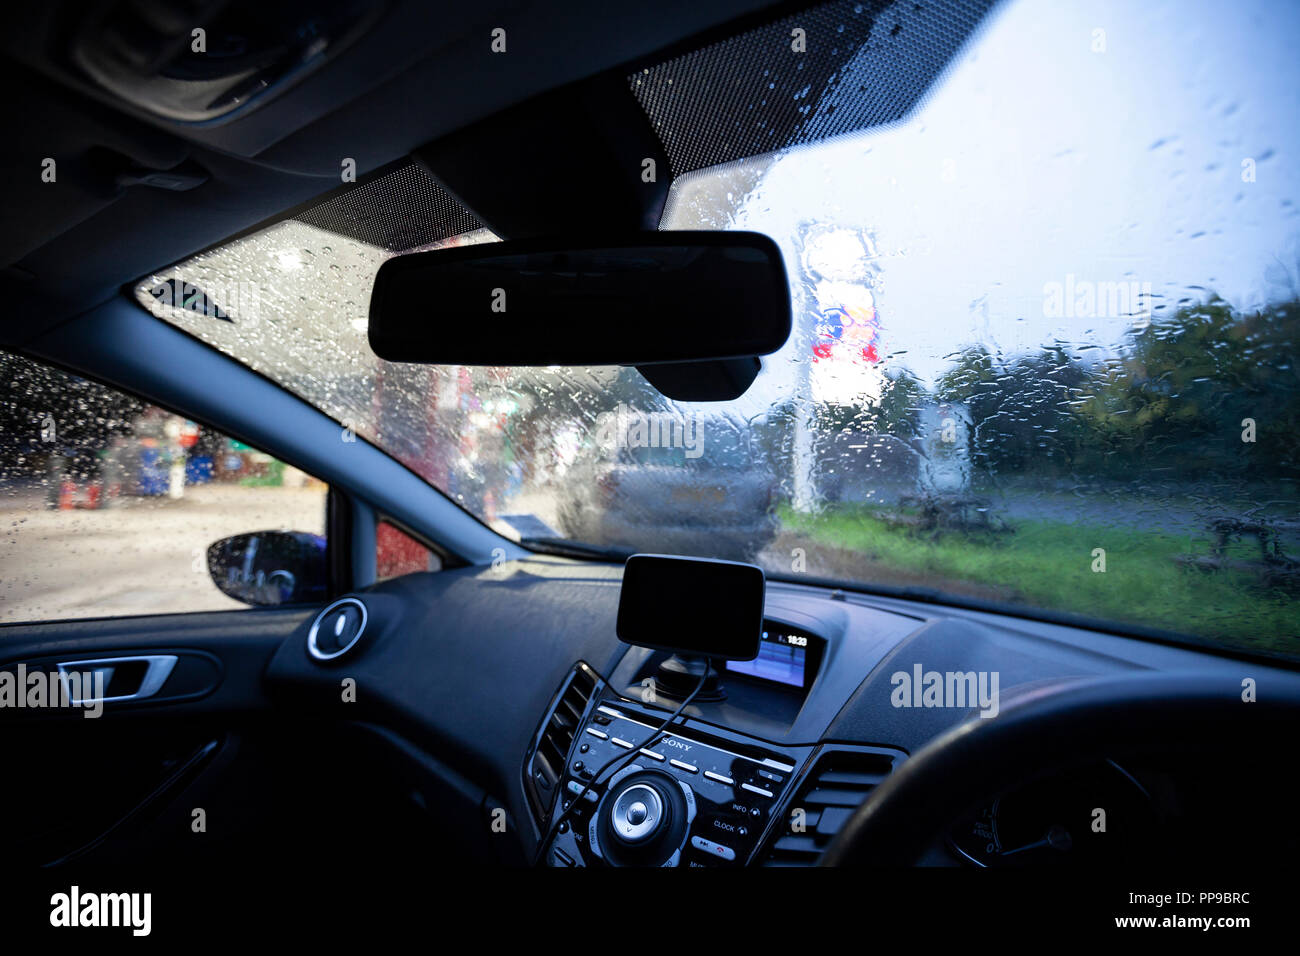 Inside a Ford Fiesta car cockpit, parked by the roadside on a rainy day. - Stock Image